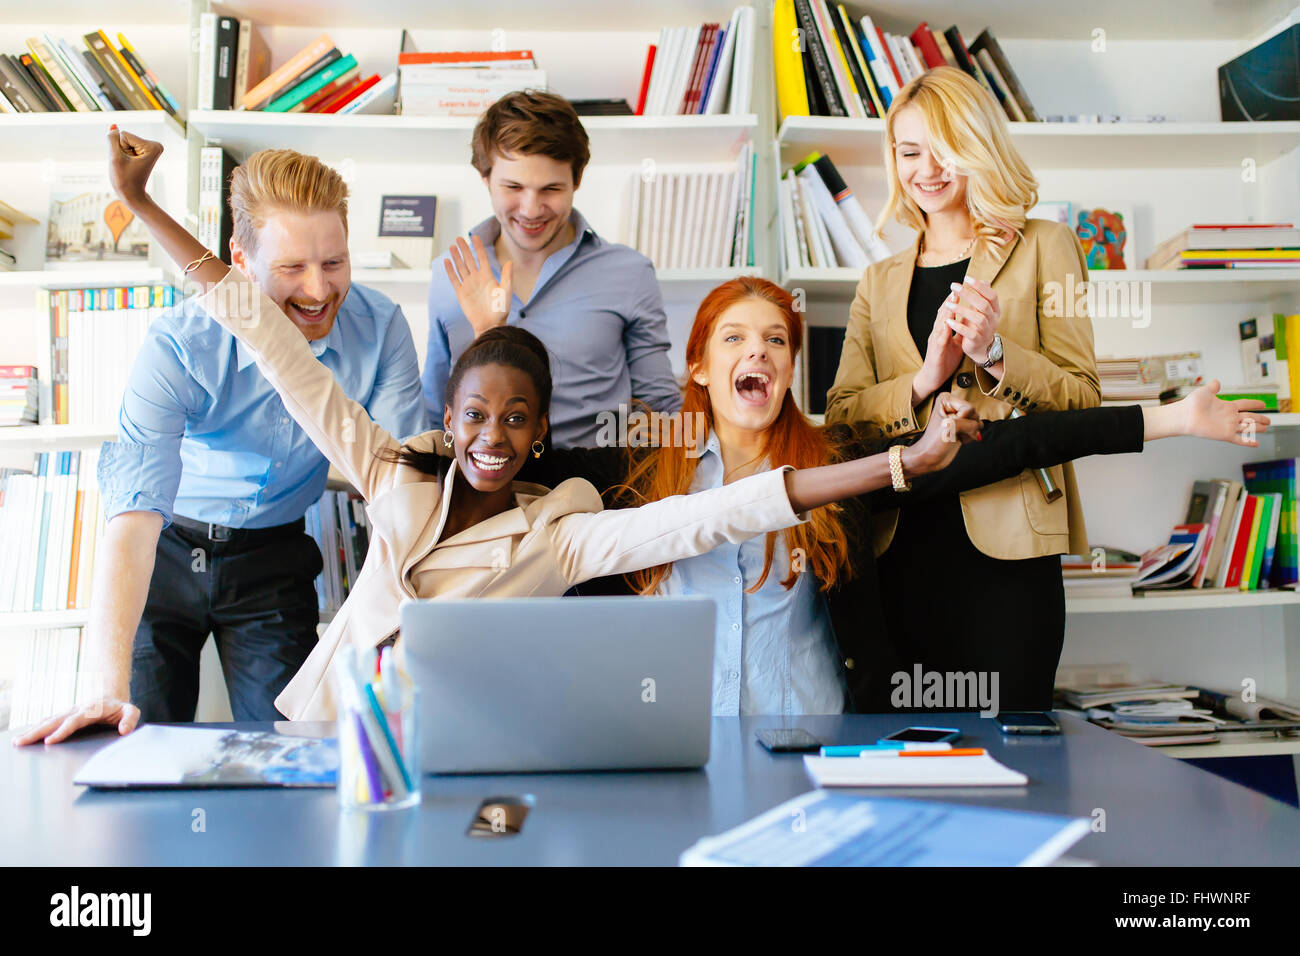 Successful company celebrates business success with coworkers being happy - Stock Image